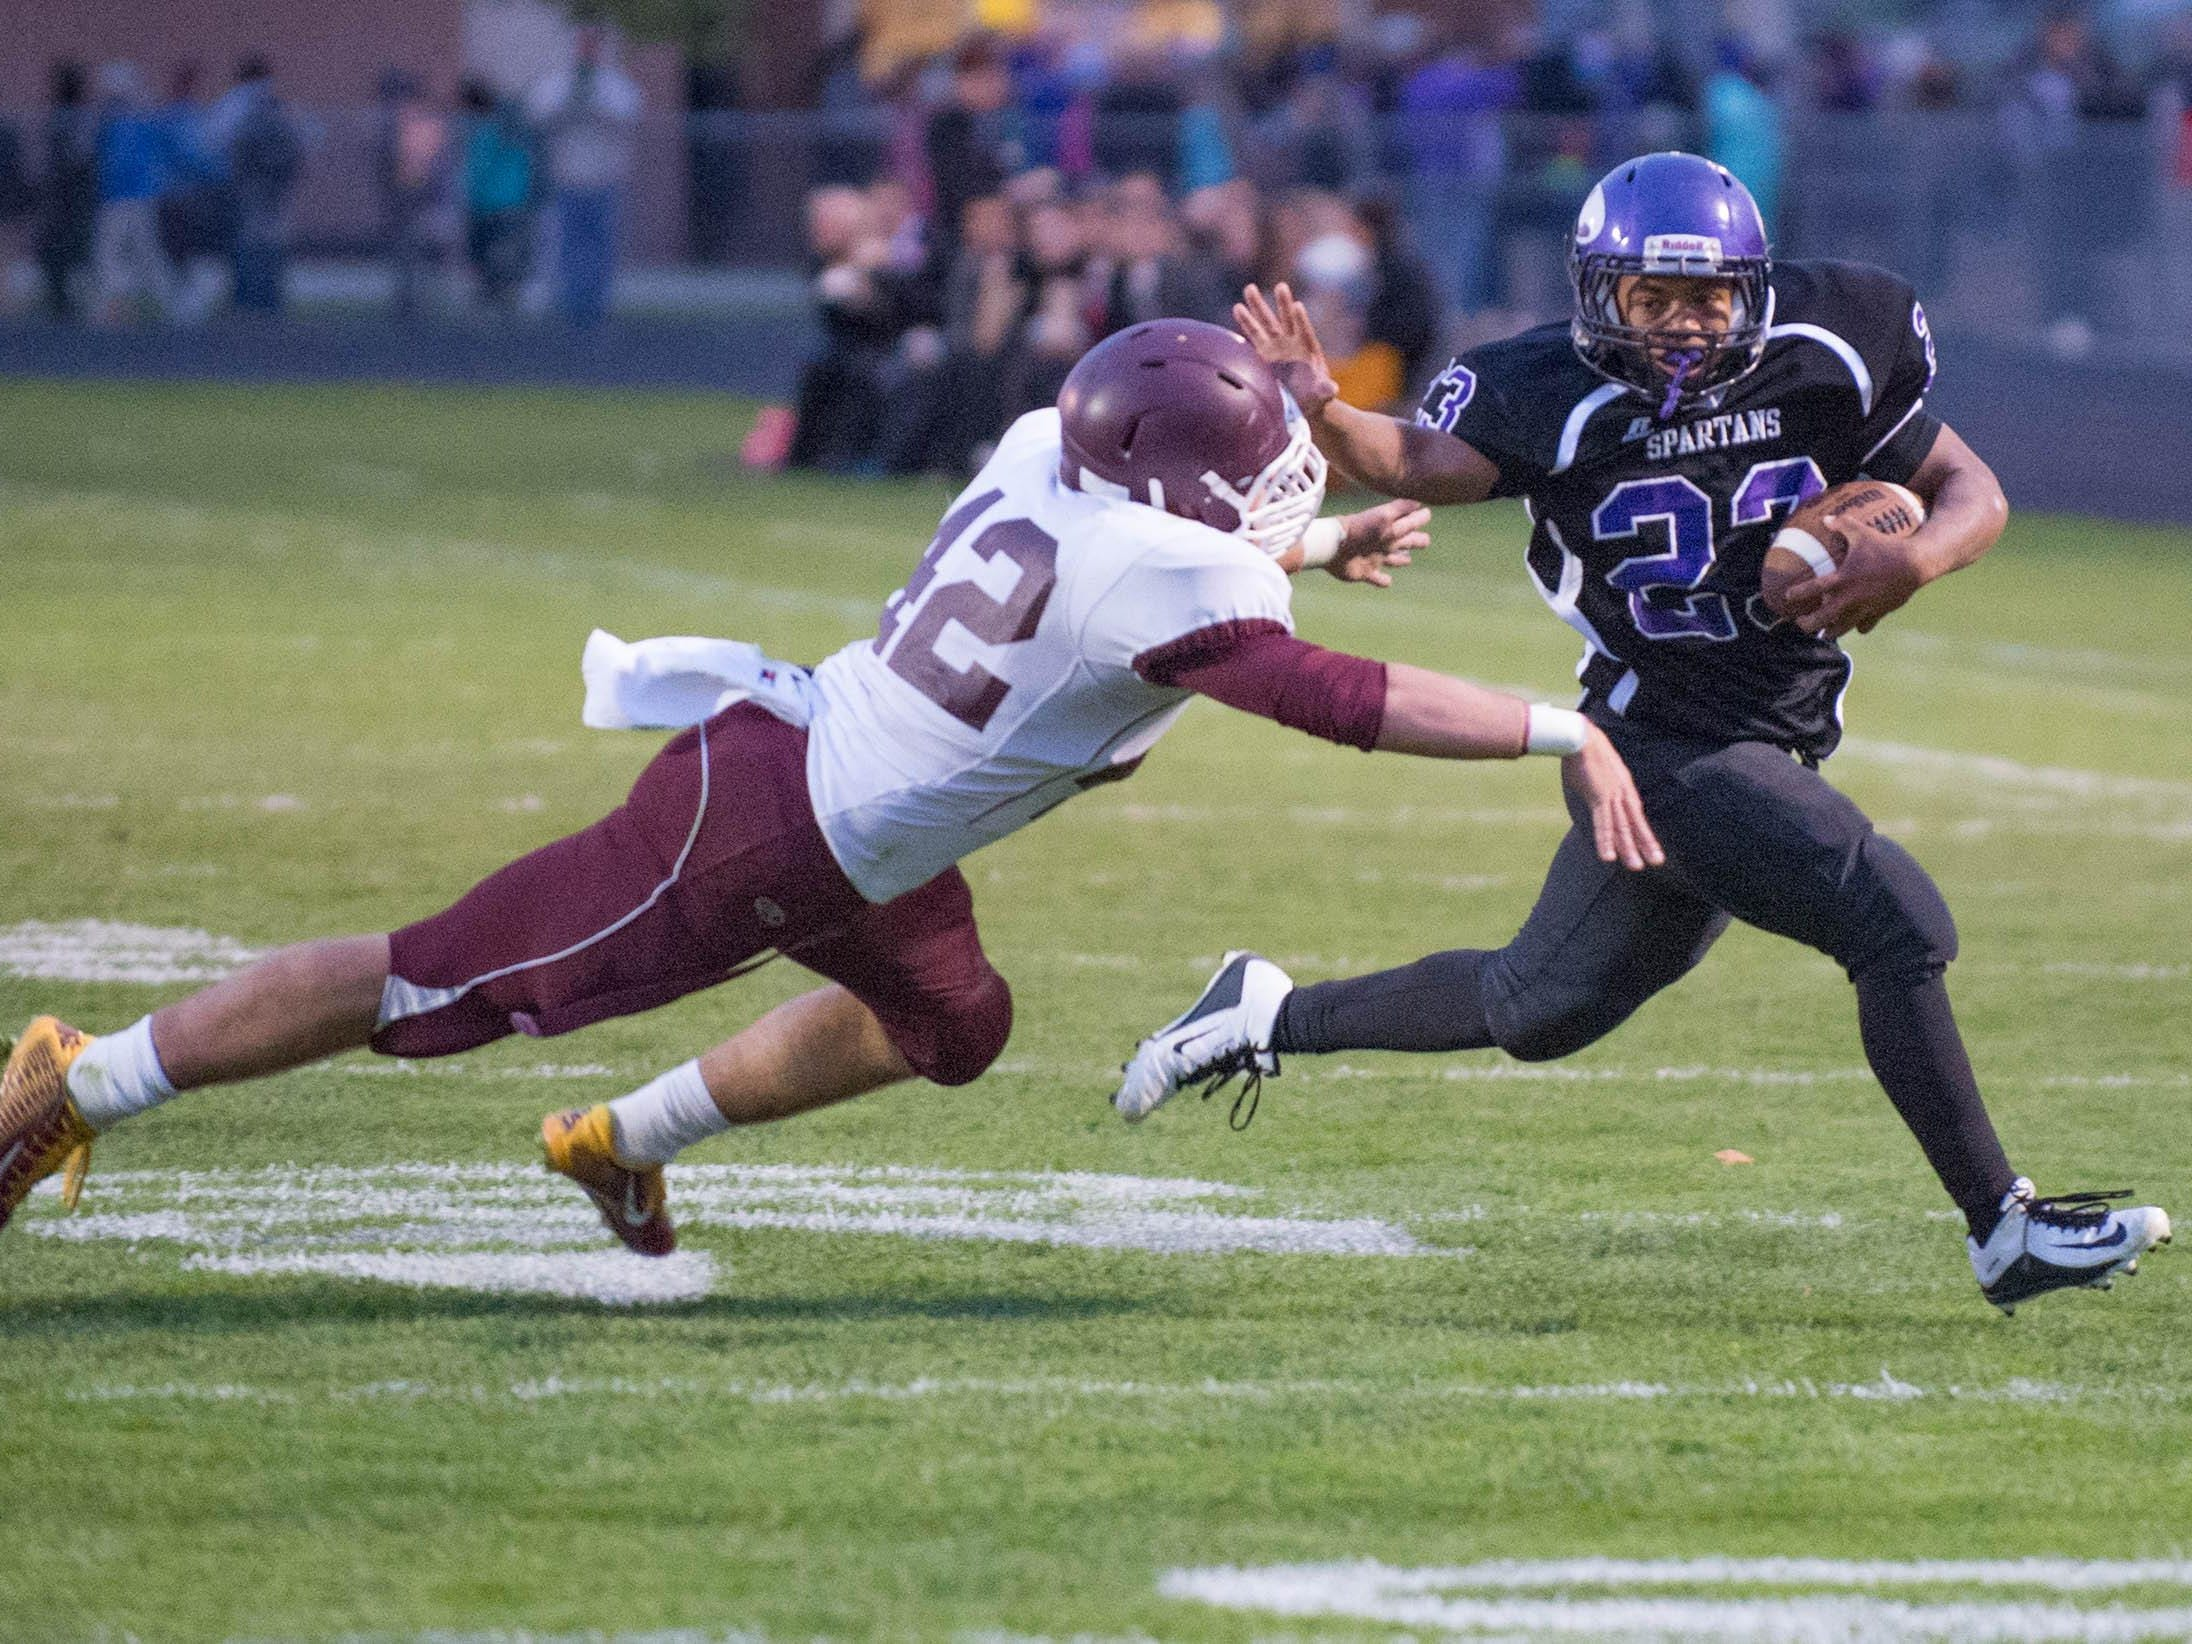 Lakeview's C.J. Foster advances the ball against Kalamazoo Central Friday evening.